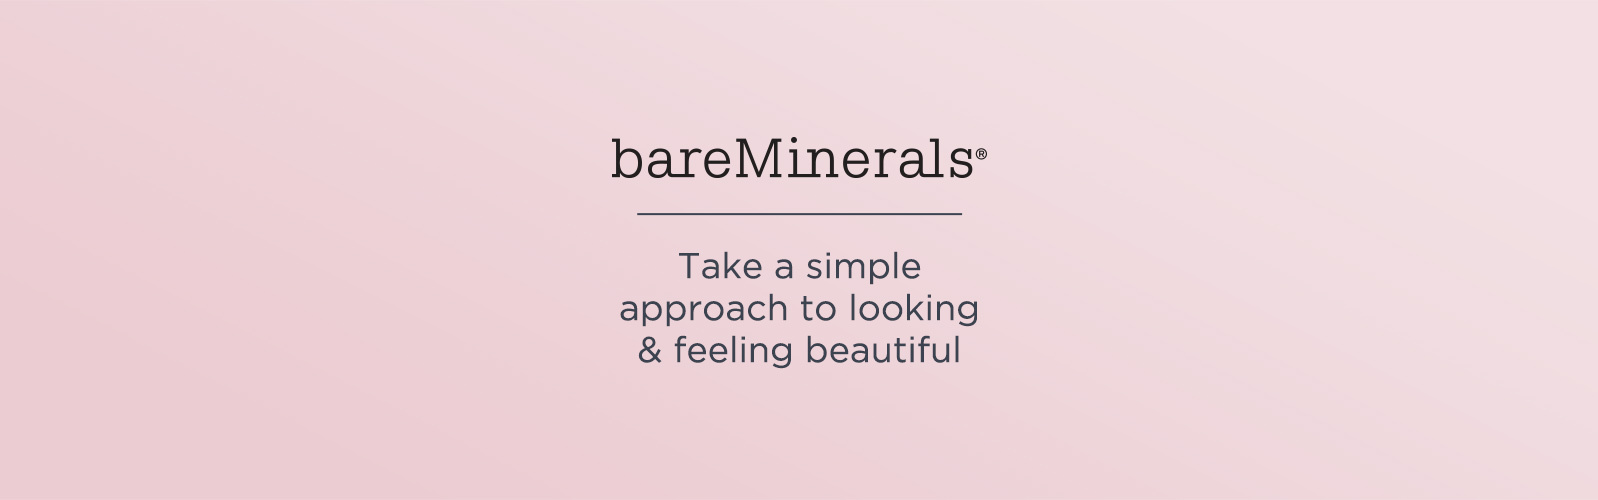 bareMinerals®.  Take a simple approach to looking & feeling beautiful